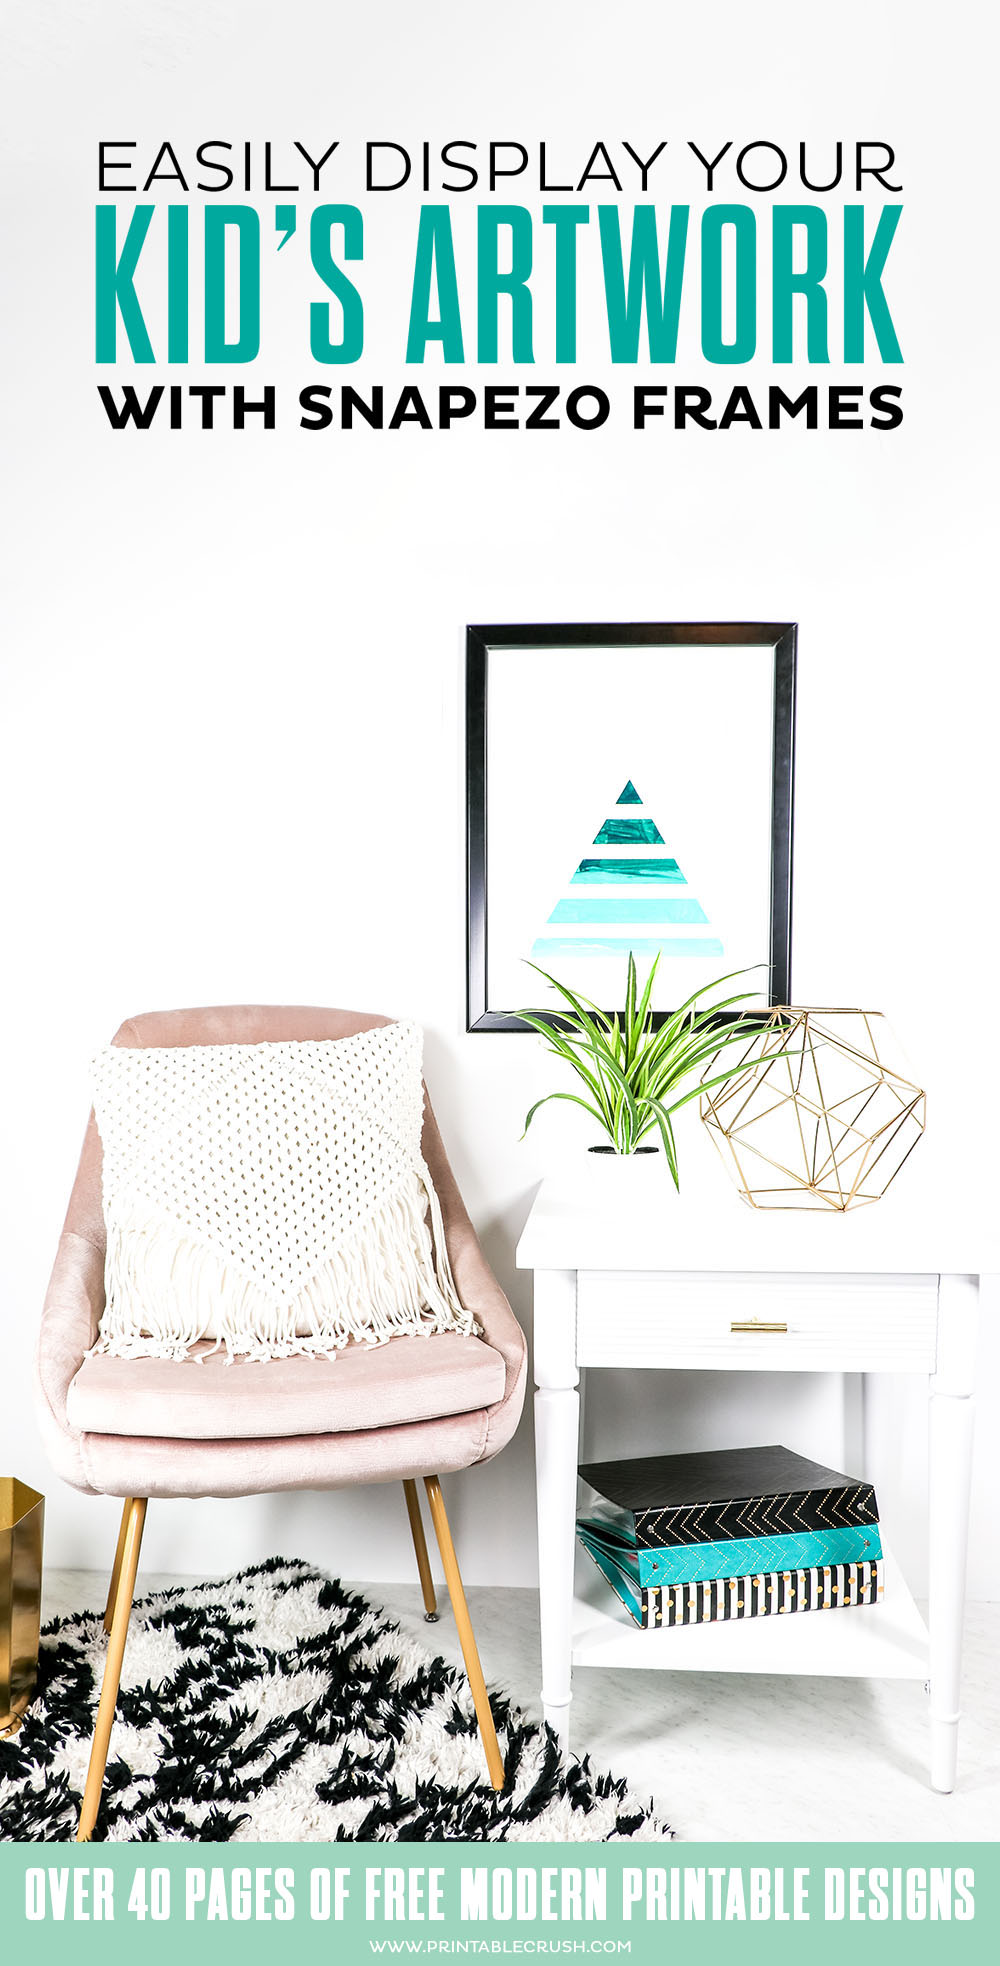 Easily display your kid's artwork with Snapezo frames - frames are nailed to the wall, open the sides of the frames, then change out images - you can do it daily if you want to!